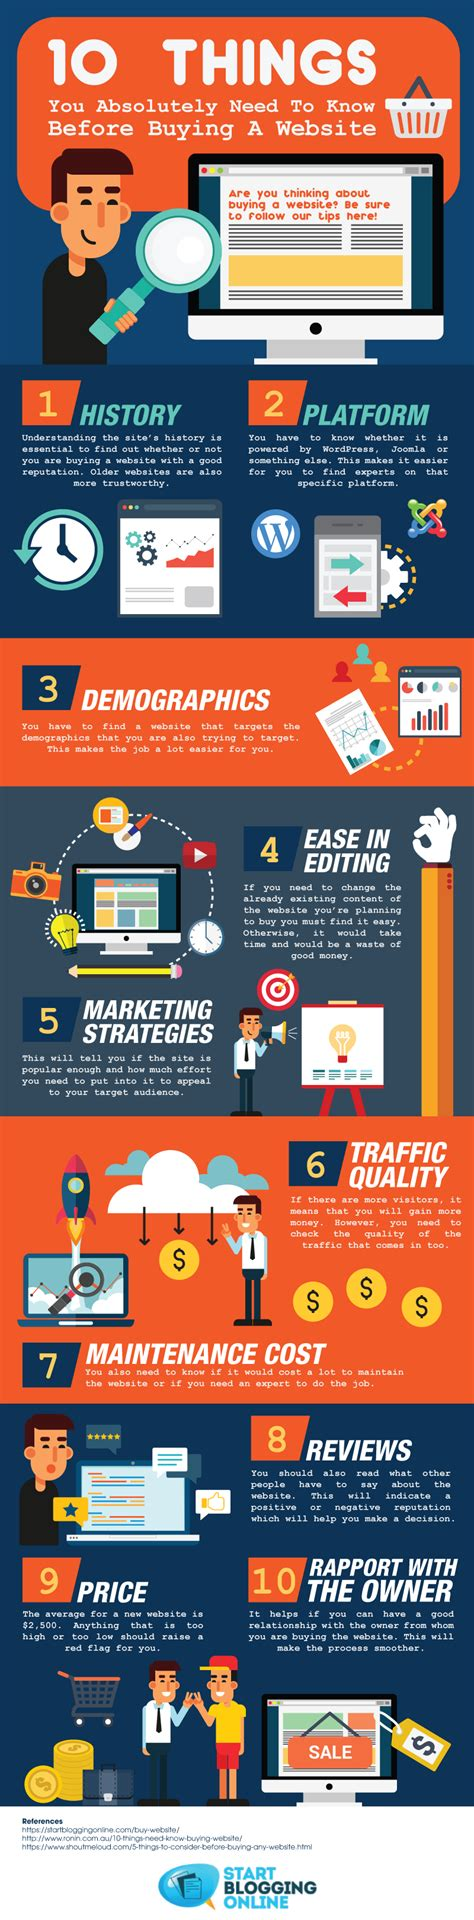 10 Things To Know Before Buying A Website Myths Uncovered. Review Moving Companies Senior Care Resources. When Is The Next Solar Eclipse. Tenant Credit Check Service Watch Your Back. Child Support Birmingham Al Harm Of Smoking. Target Advertising Agency Sas Data Analytics. Getting An Associates Degree Online. Essential Thrombocythemia Life Expectancy. Easy Payroll For Small Business